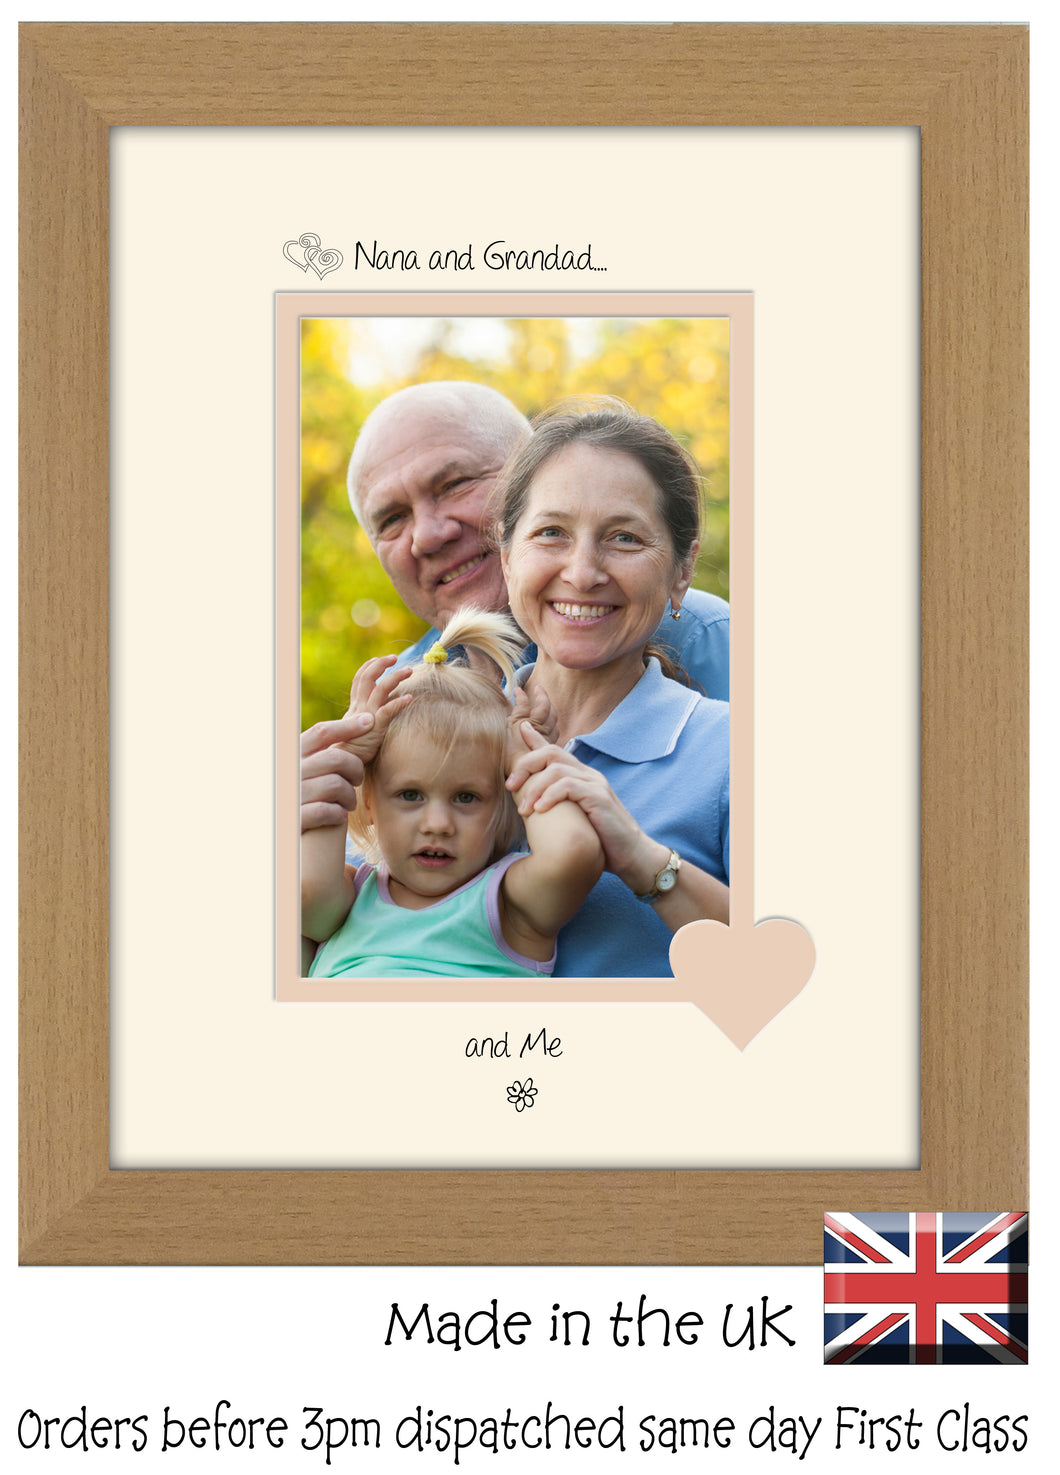 Nana Grandad Photo Frame Nana And Grandad And Me Portrait